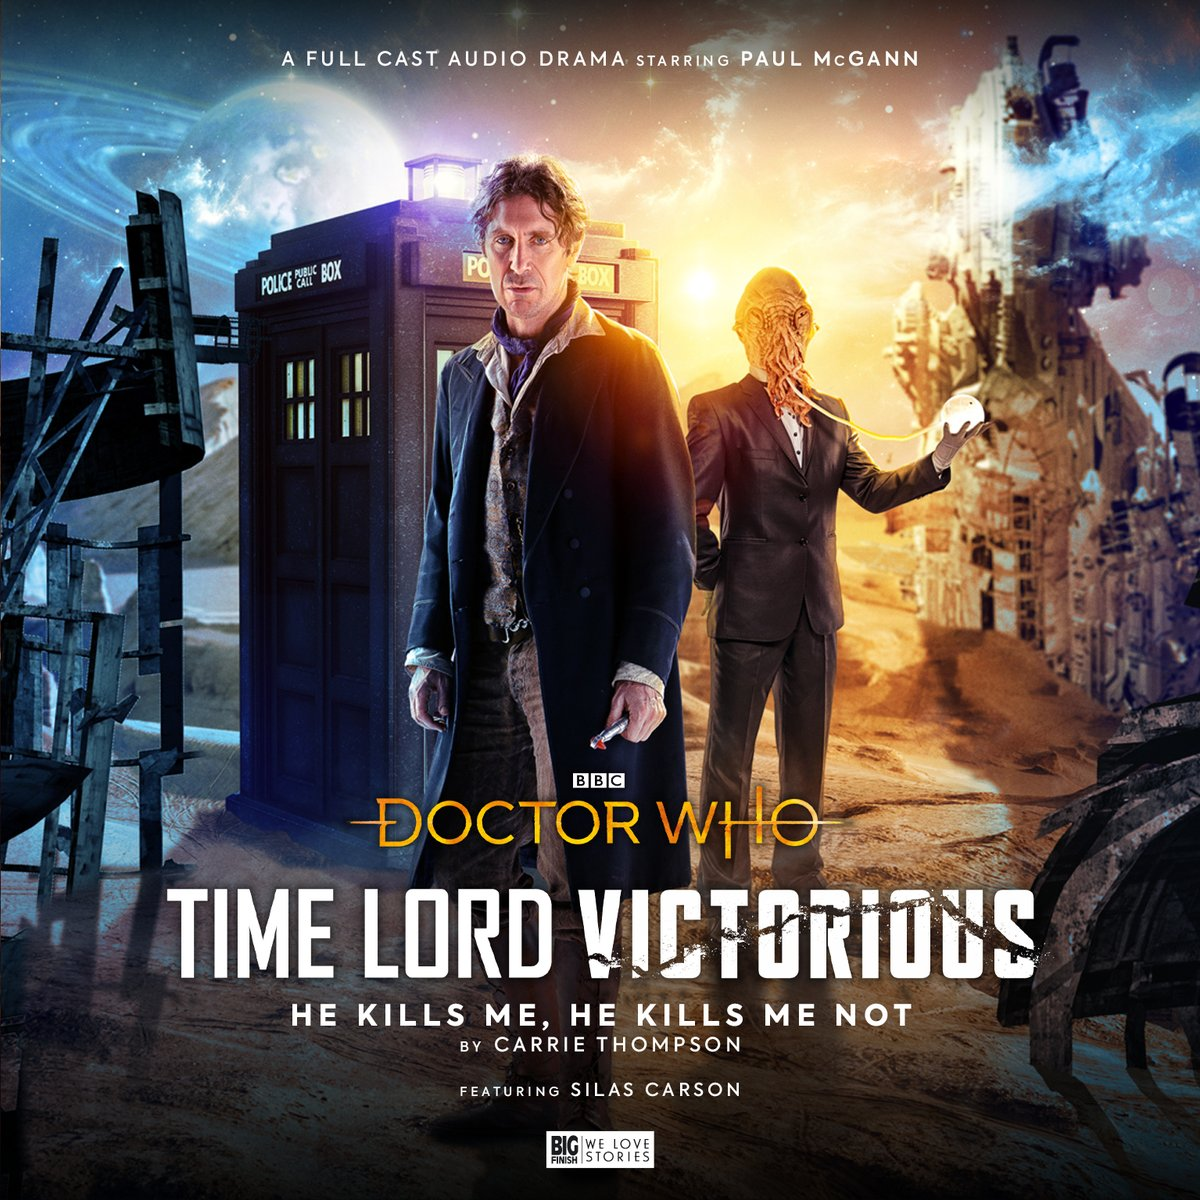 Sure, October begins tomorrow but you're going to have to wait a little while... PRE-ORDER the #TimeLordVictorious bundles here: https://t.co/7x4ozA7CY5 https://t.co/1HYza5tnRr